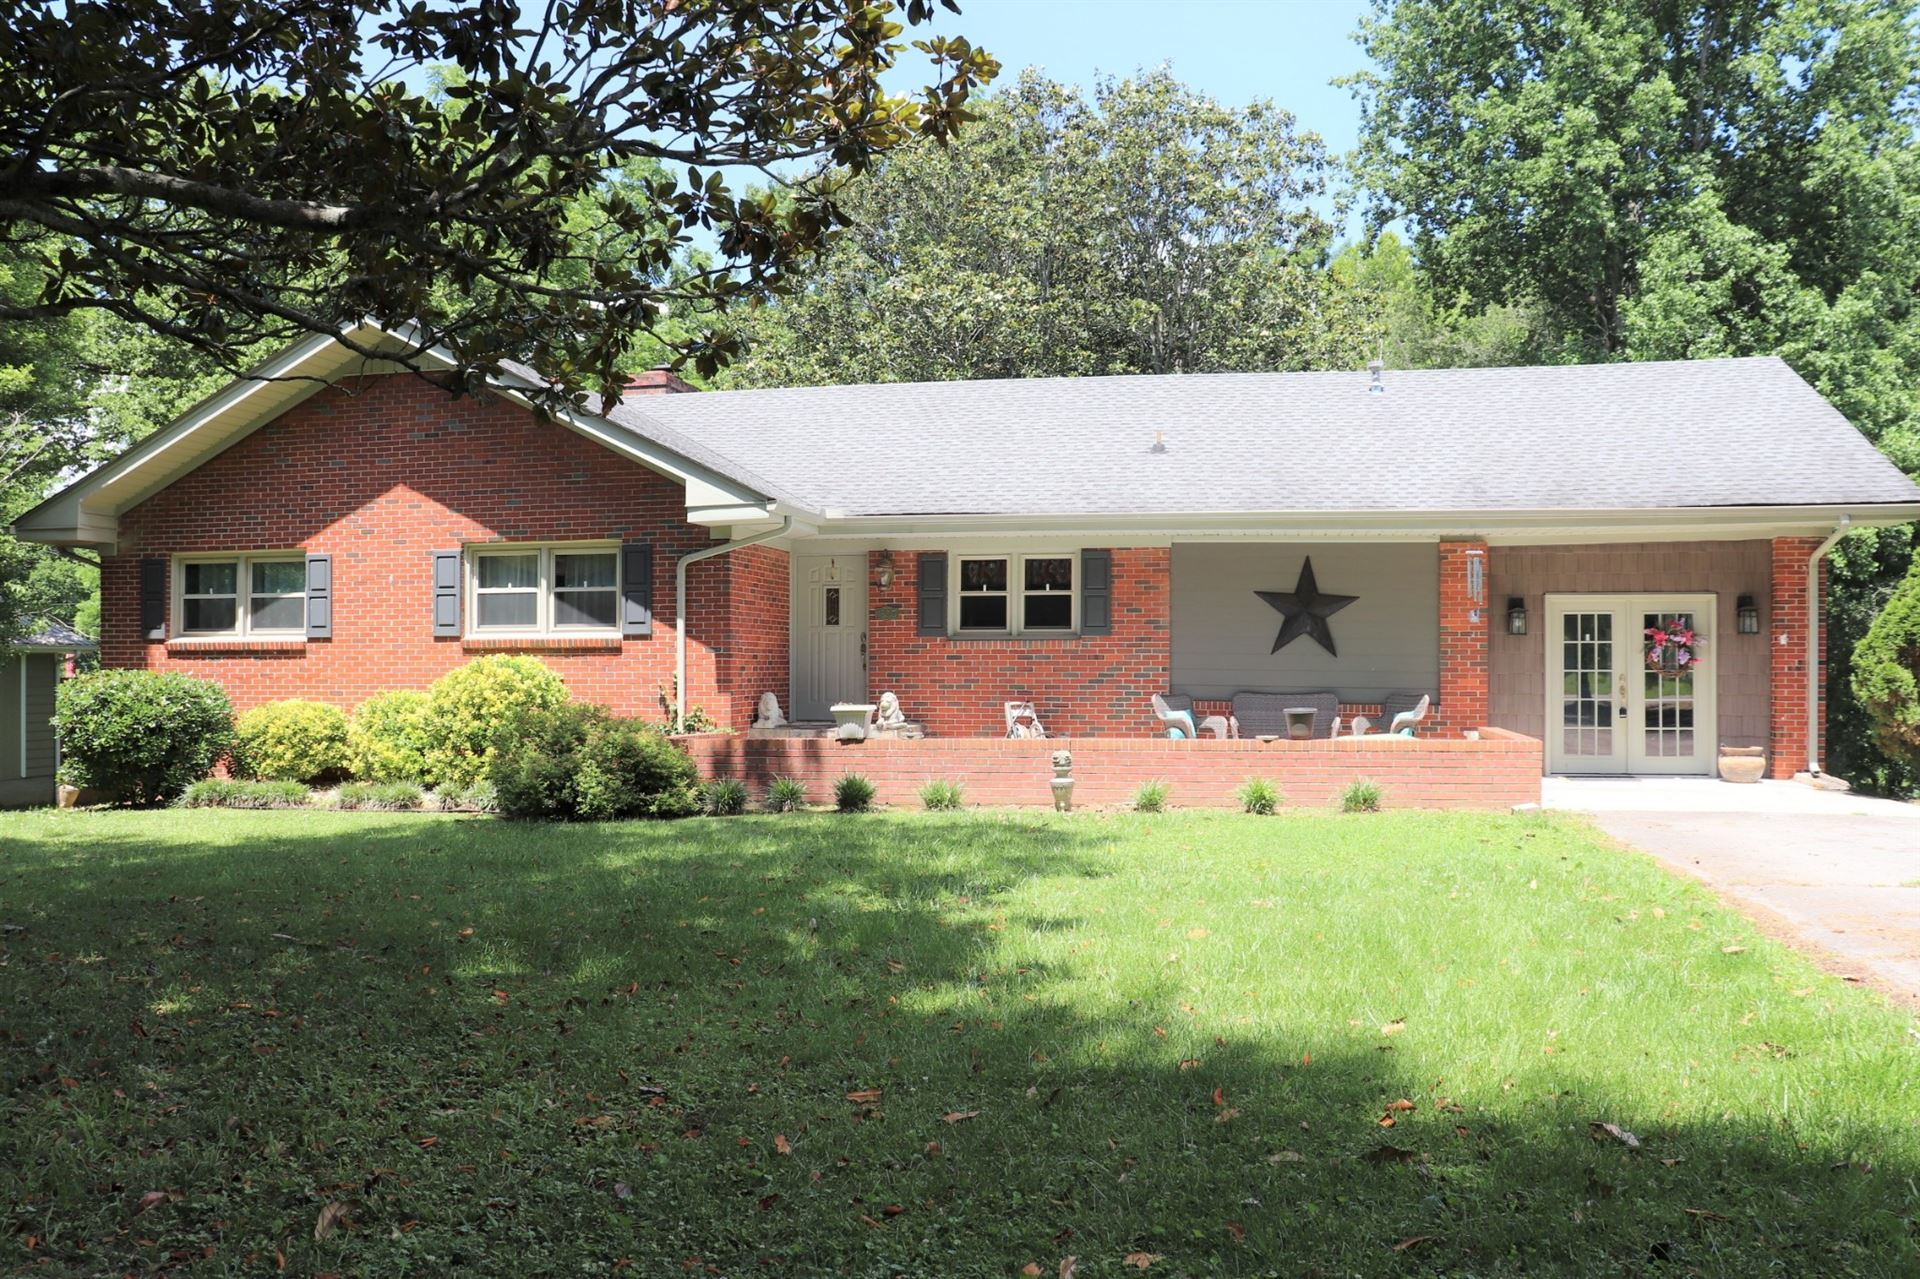 1305 Sycamore Dr SE, Manchester, TN 37355 - MLS#: 2266659